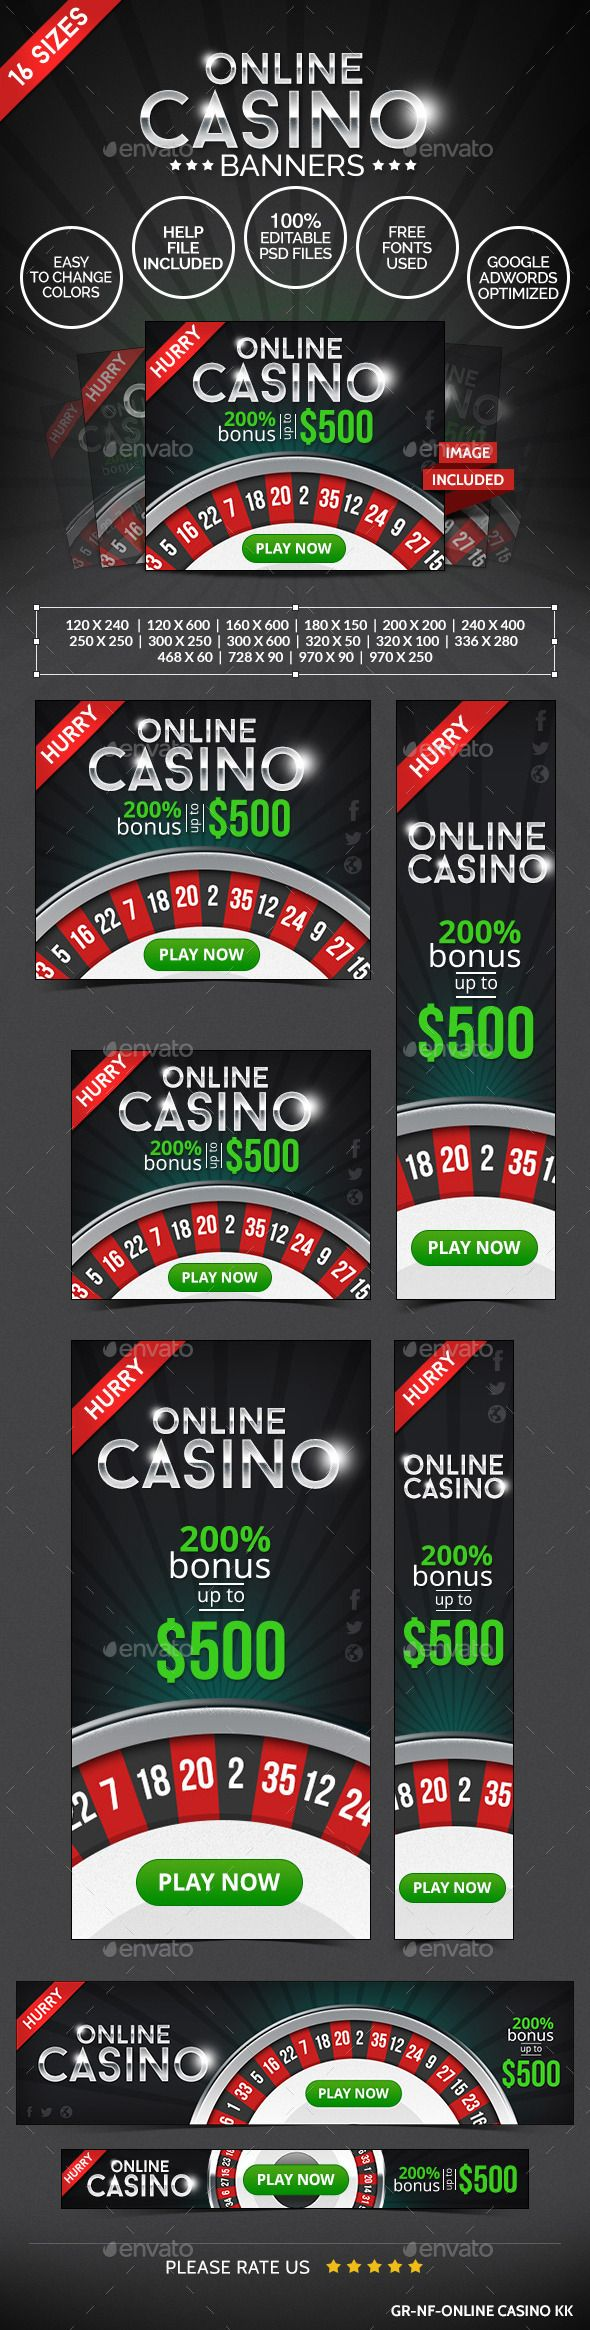 Advertising banner casino casino rules changed members require id